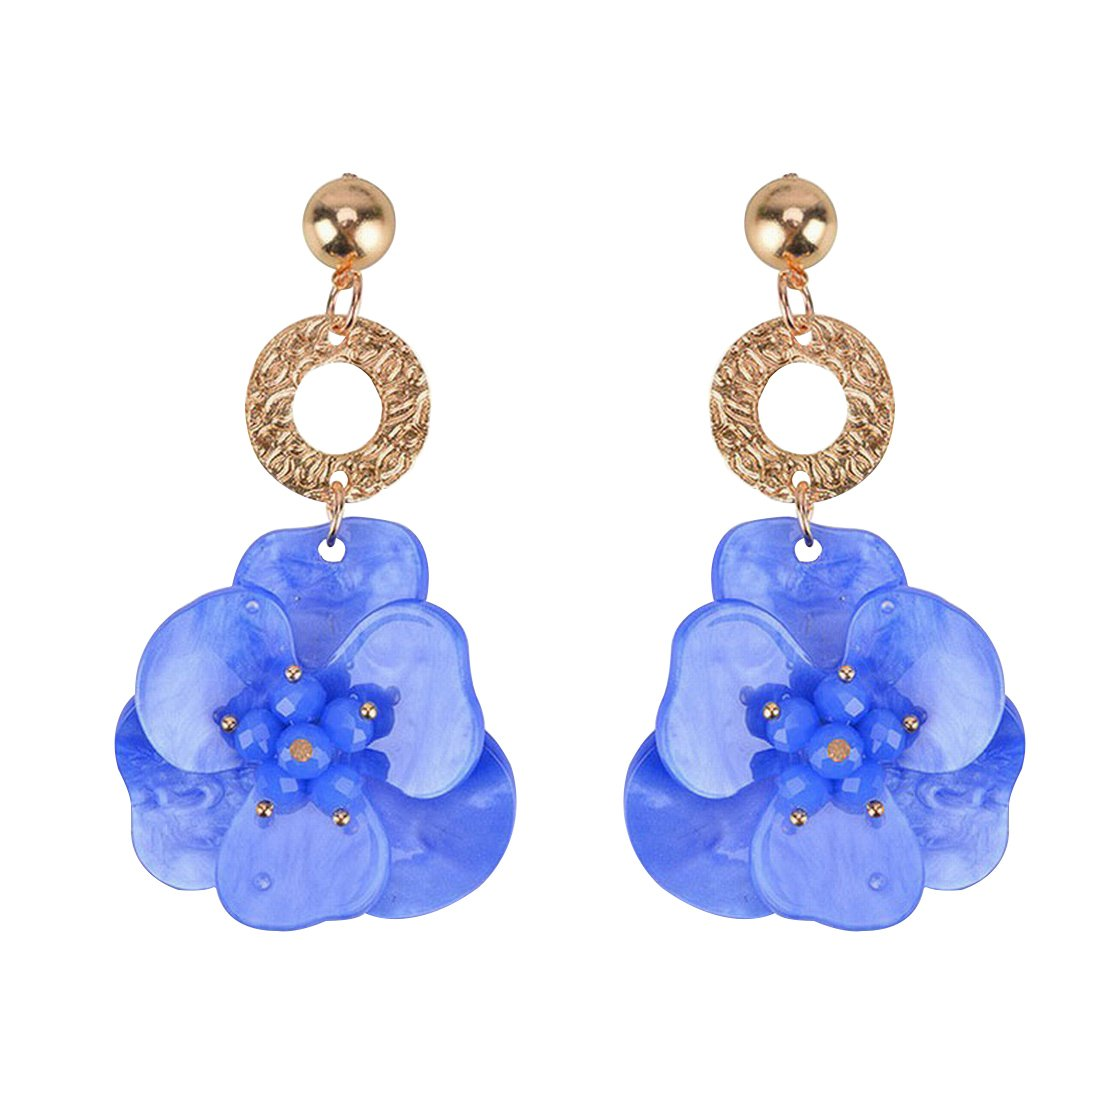 Olsen Twins Stylish Lucite Acrylic Clover Flower Drop Earrings, Summer Jewrlry (Blue)